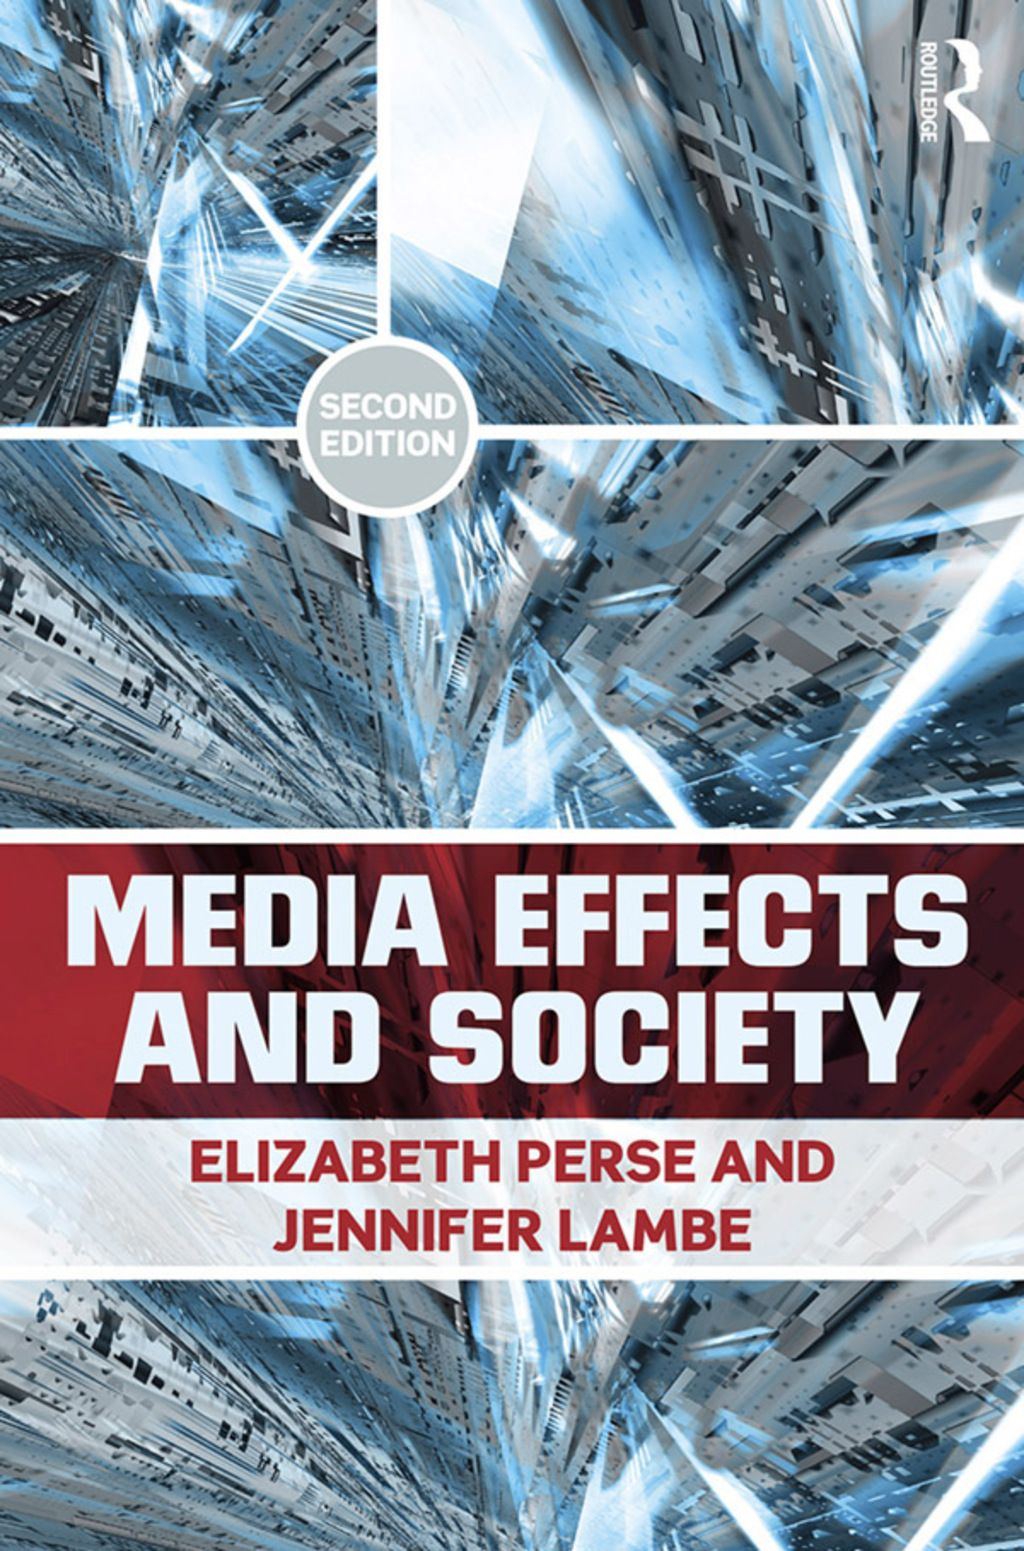 Media Effects And Society Ebook Rental